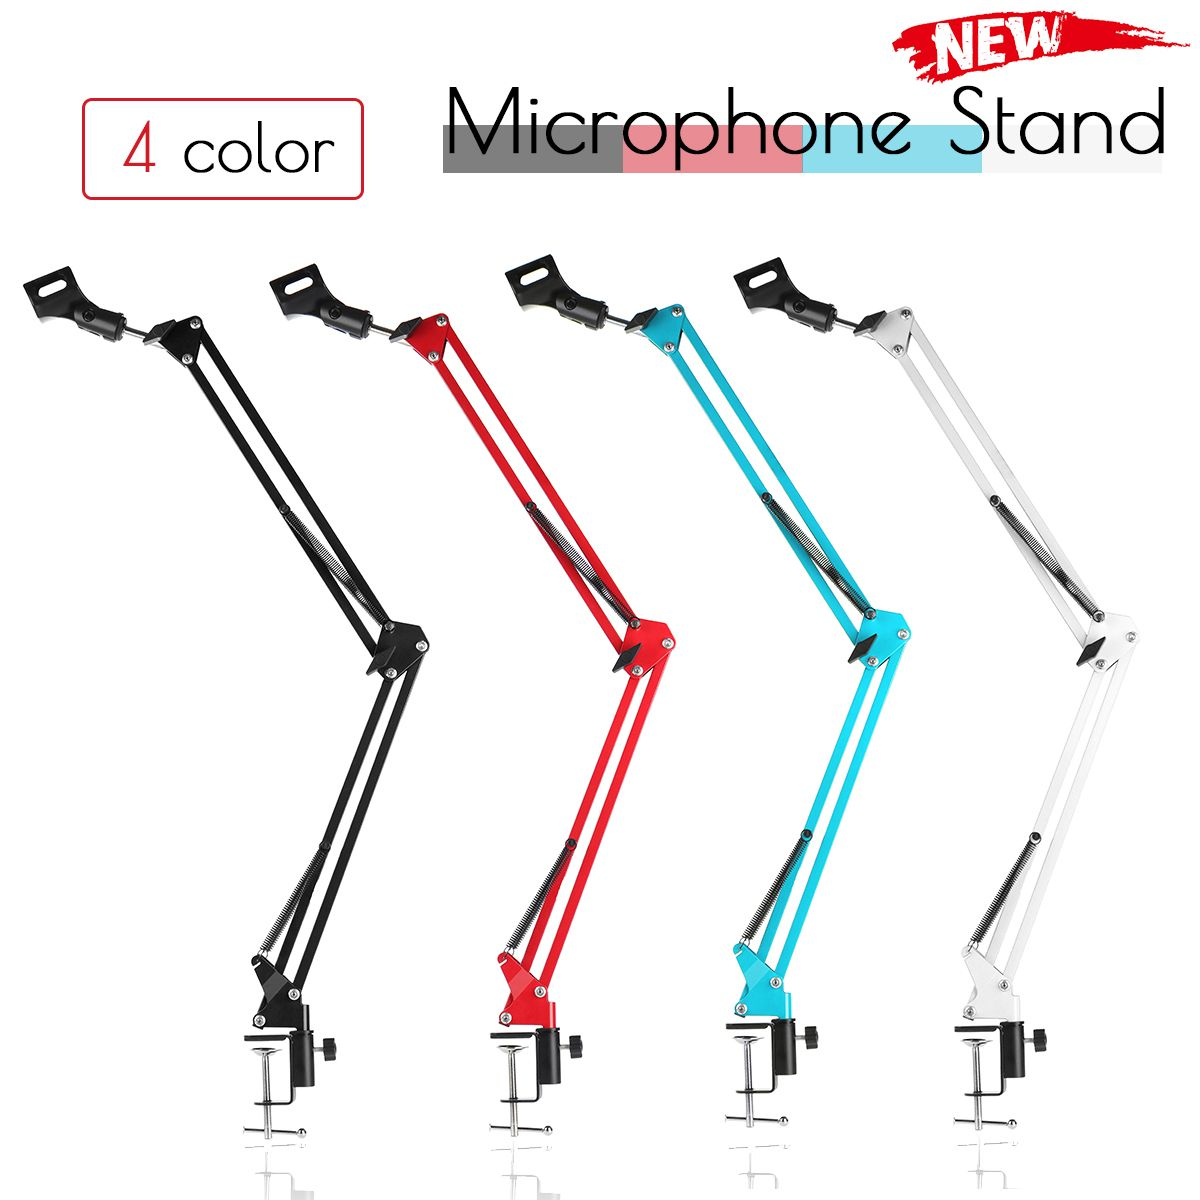 NB-35 Professional Metal <font><b>Suspension</b></font> Scissor Arm Adjustable Microphone Stand Holder For Mounting On PC Laptop Notebook